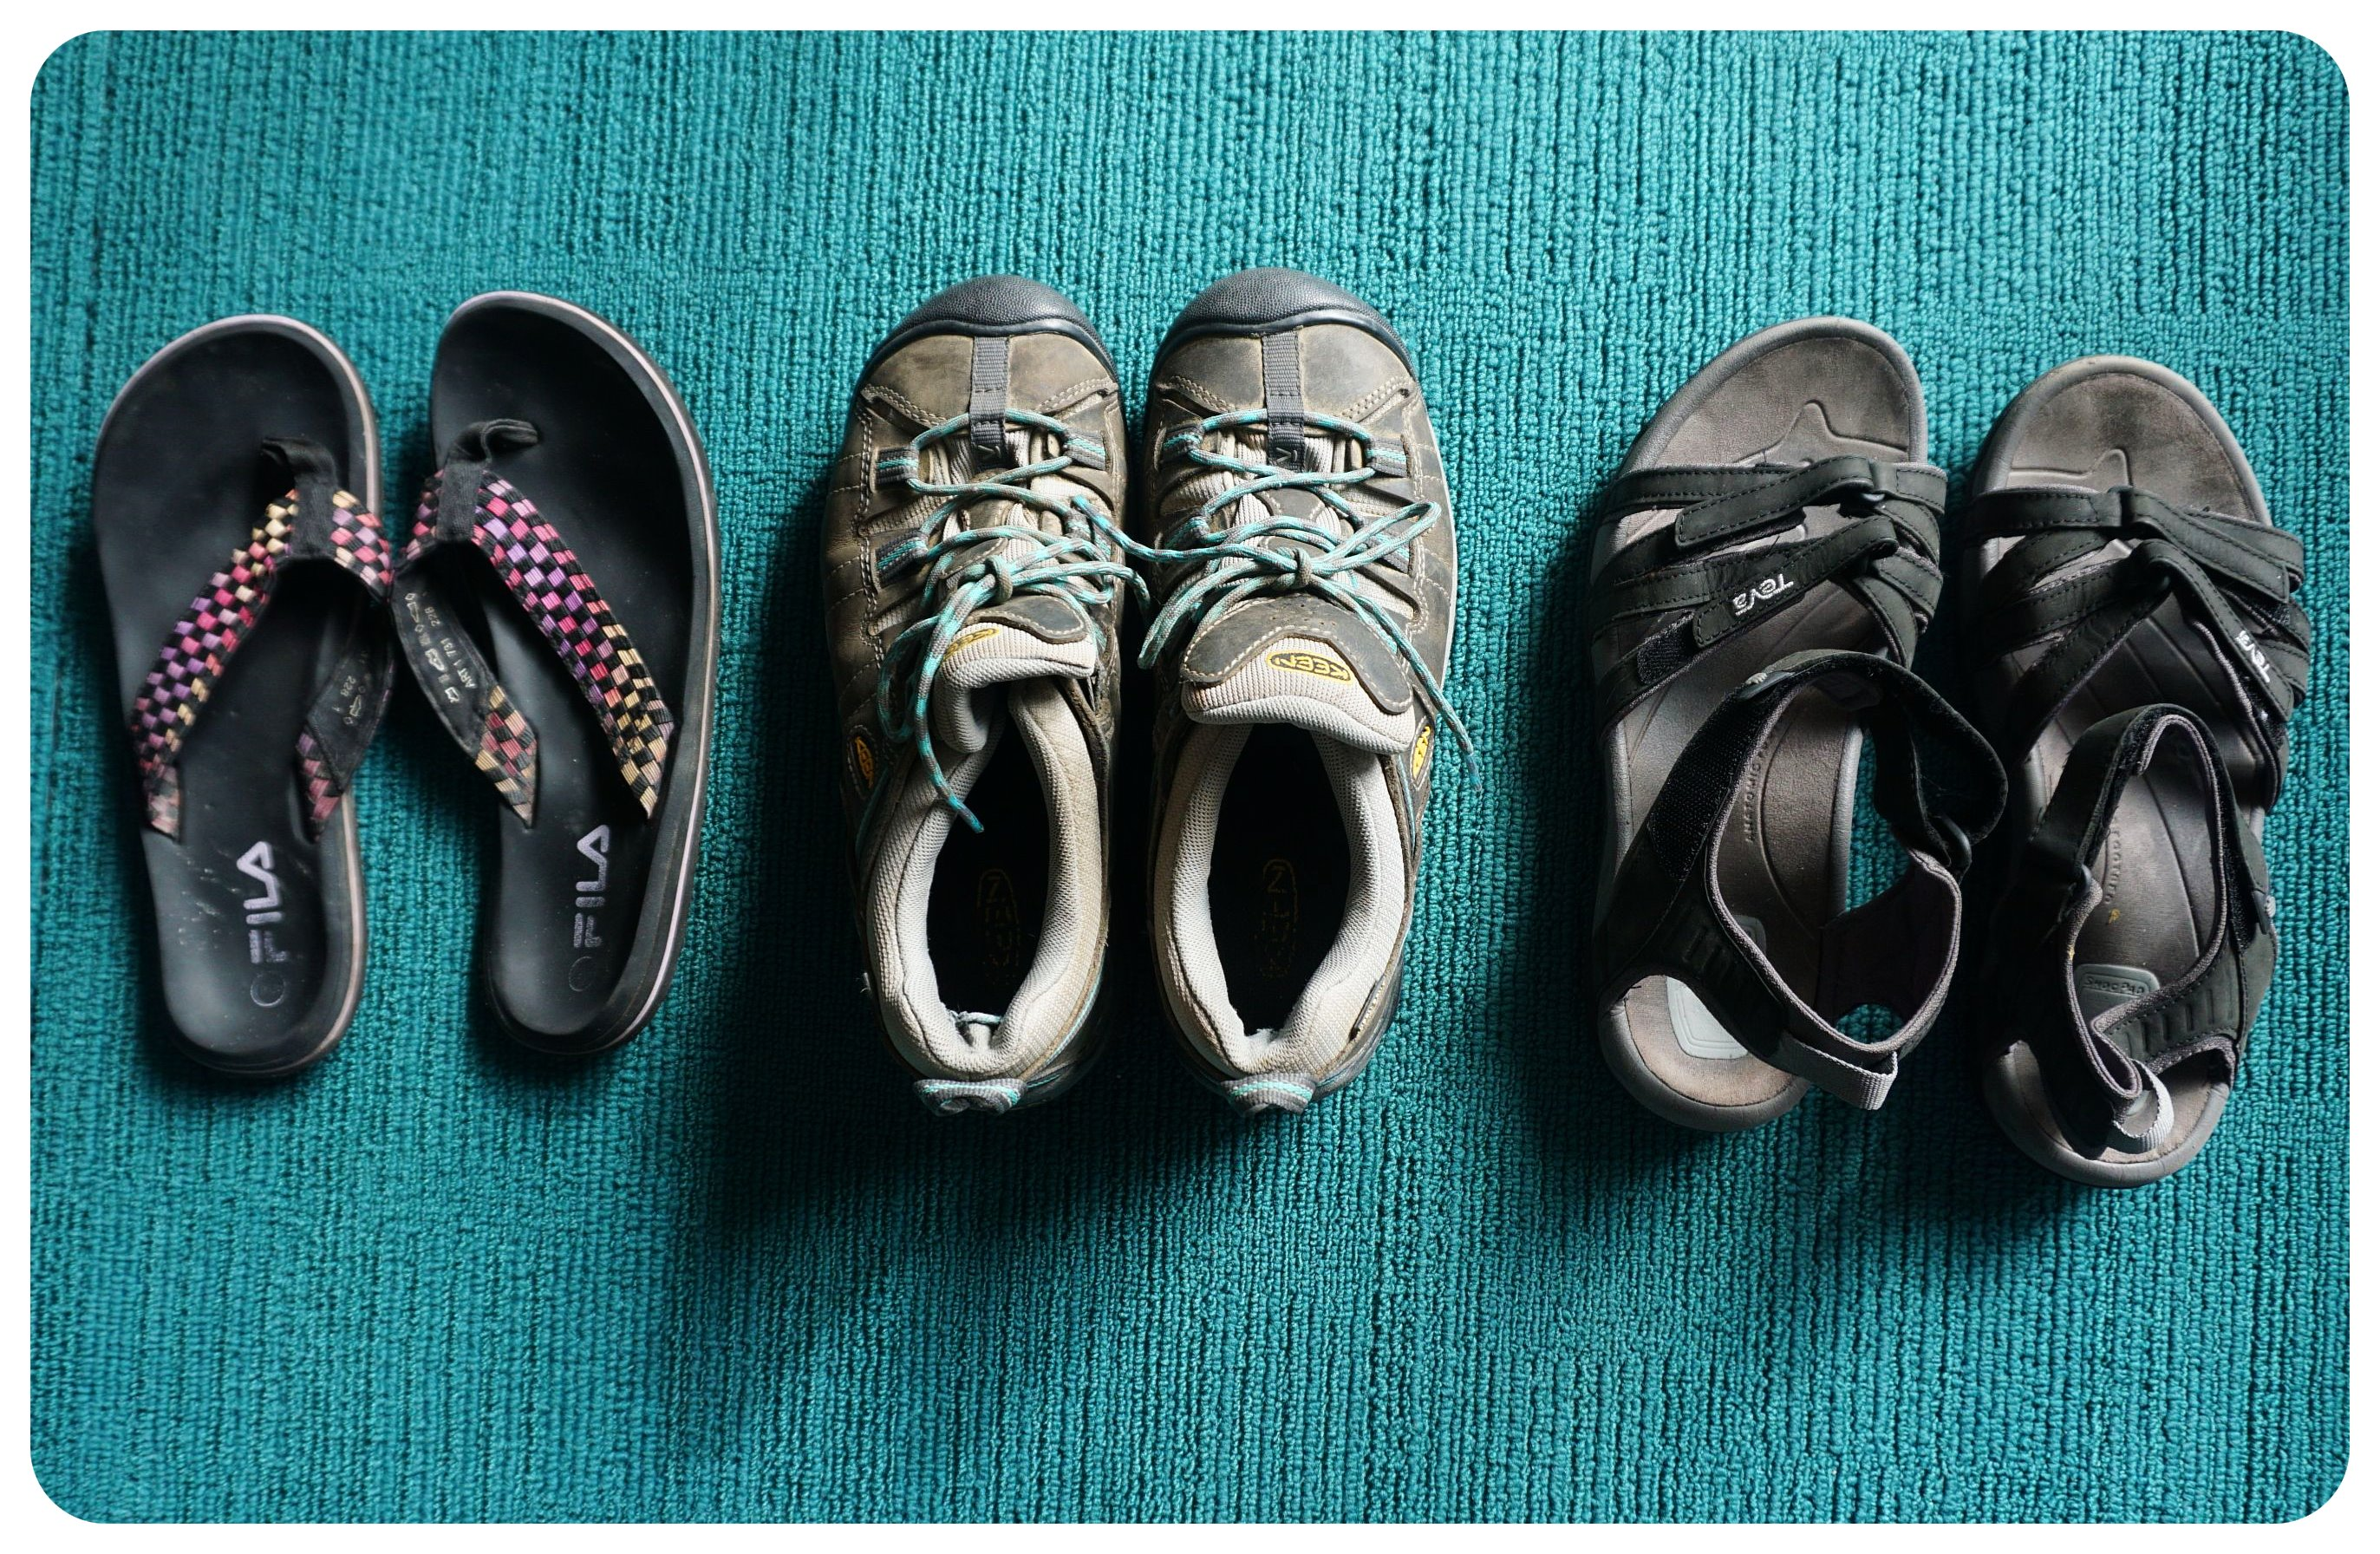 packing list camino de santiago shoes